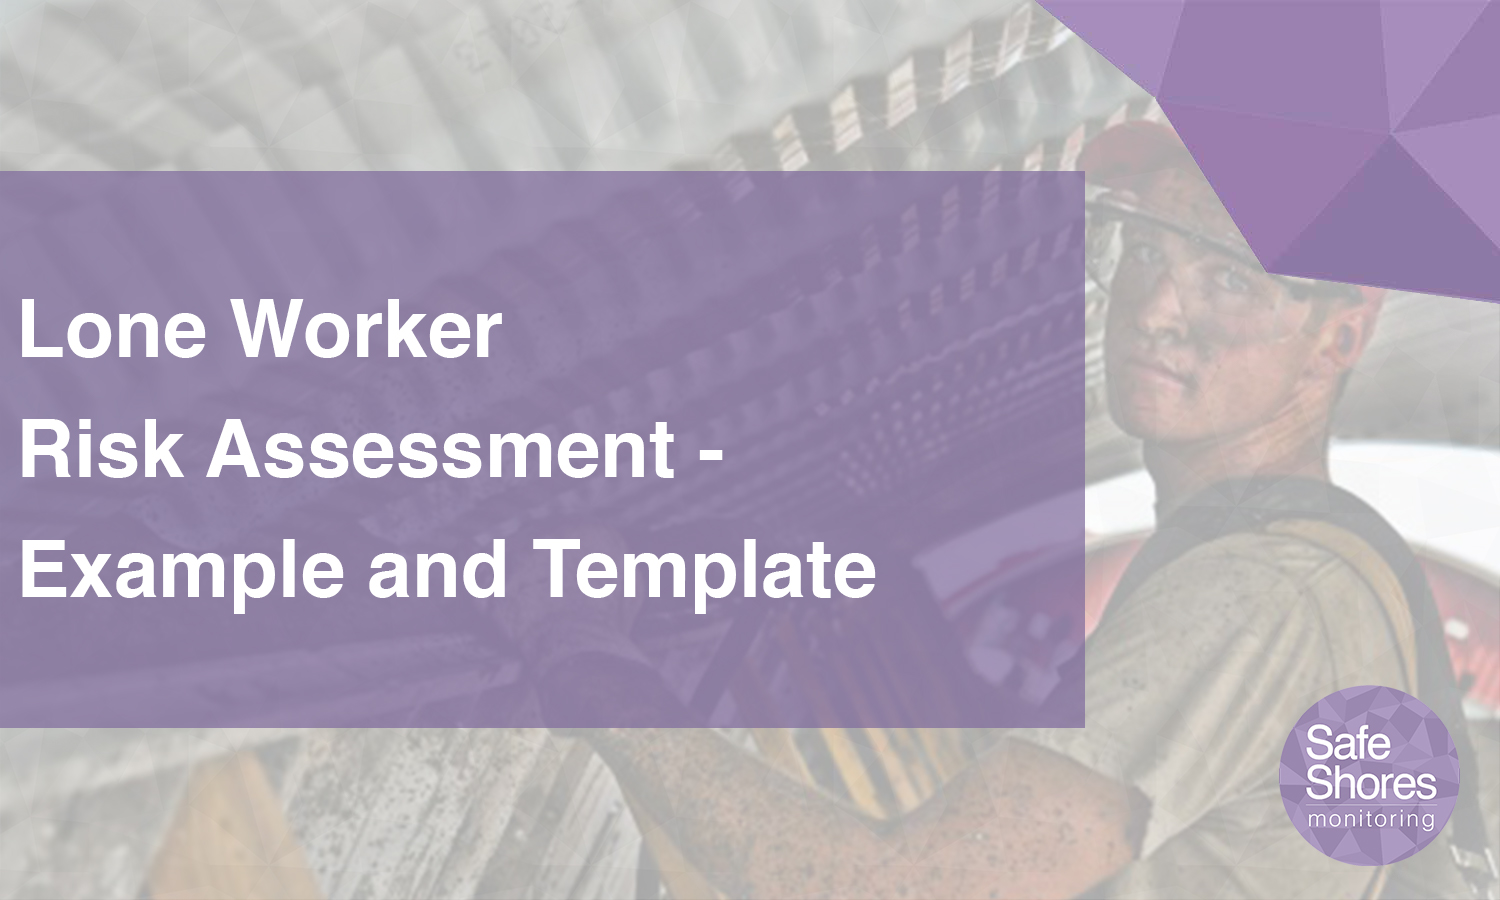 Lone worker risk assessment example